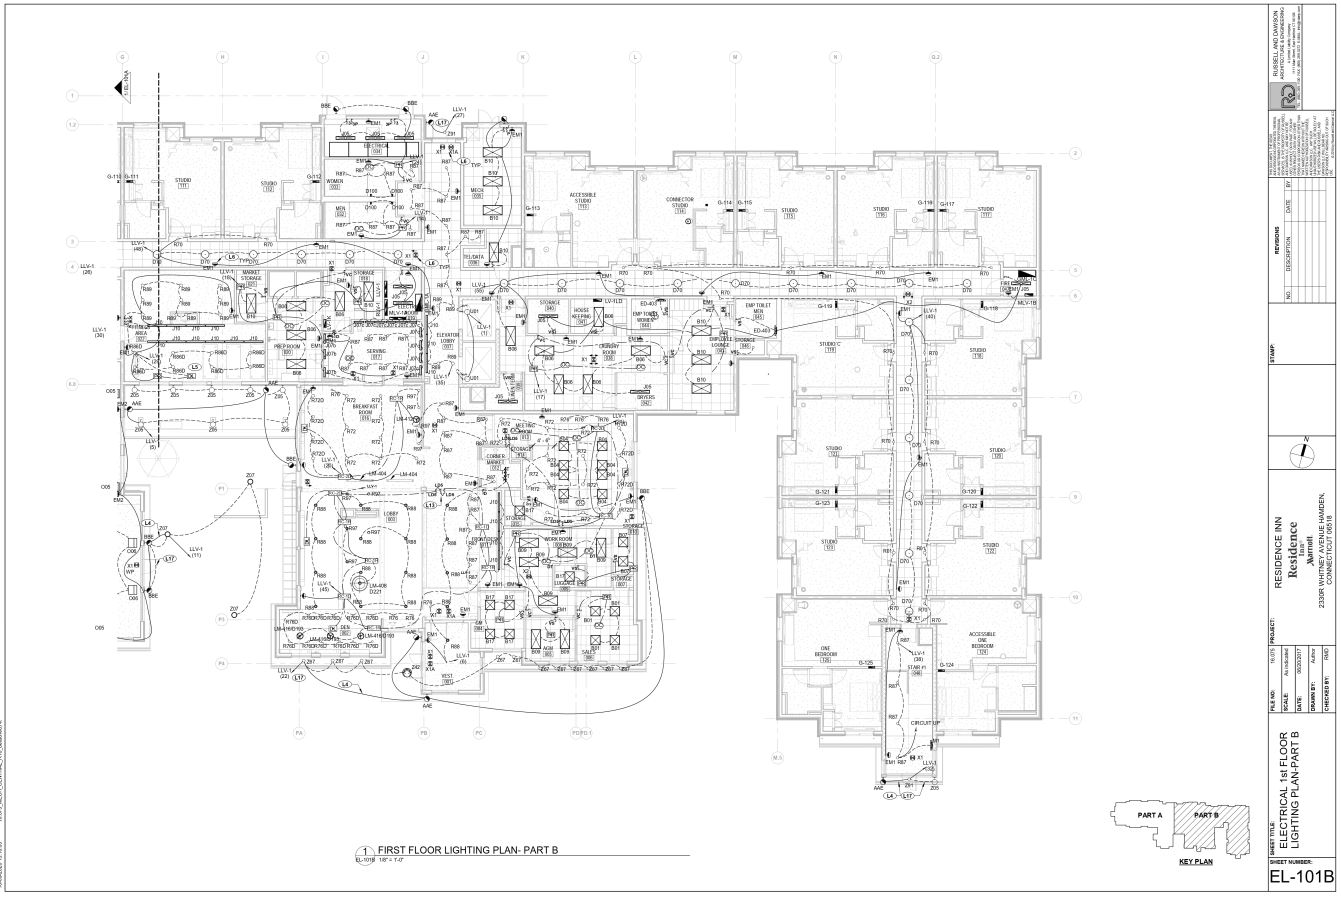 Electrical Floor Lighting Plan